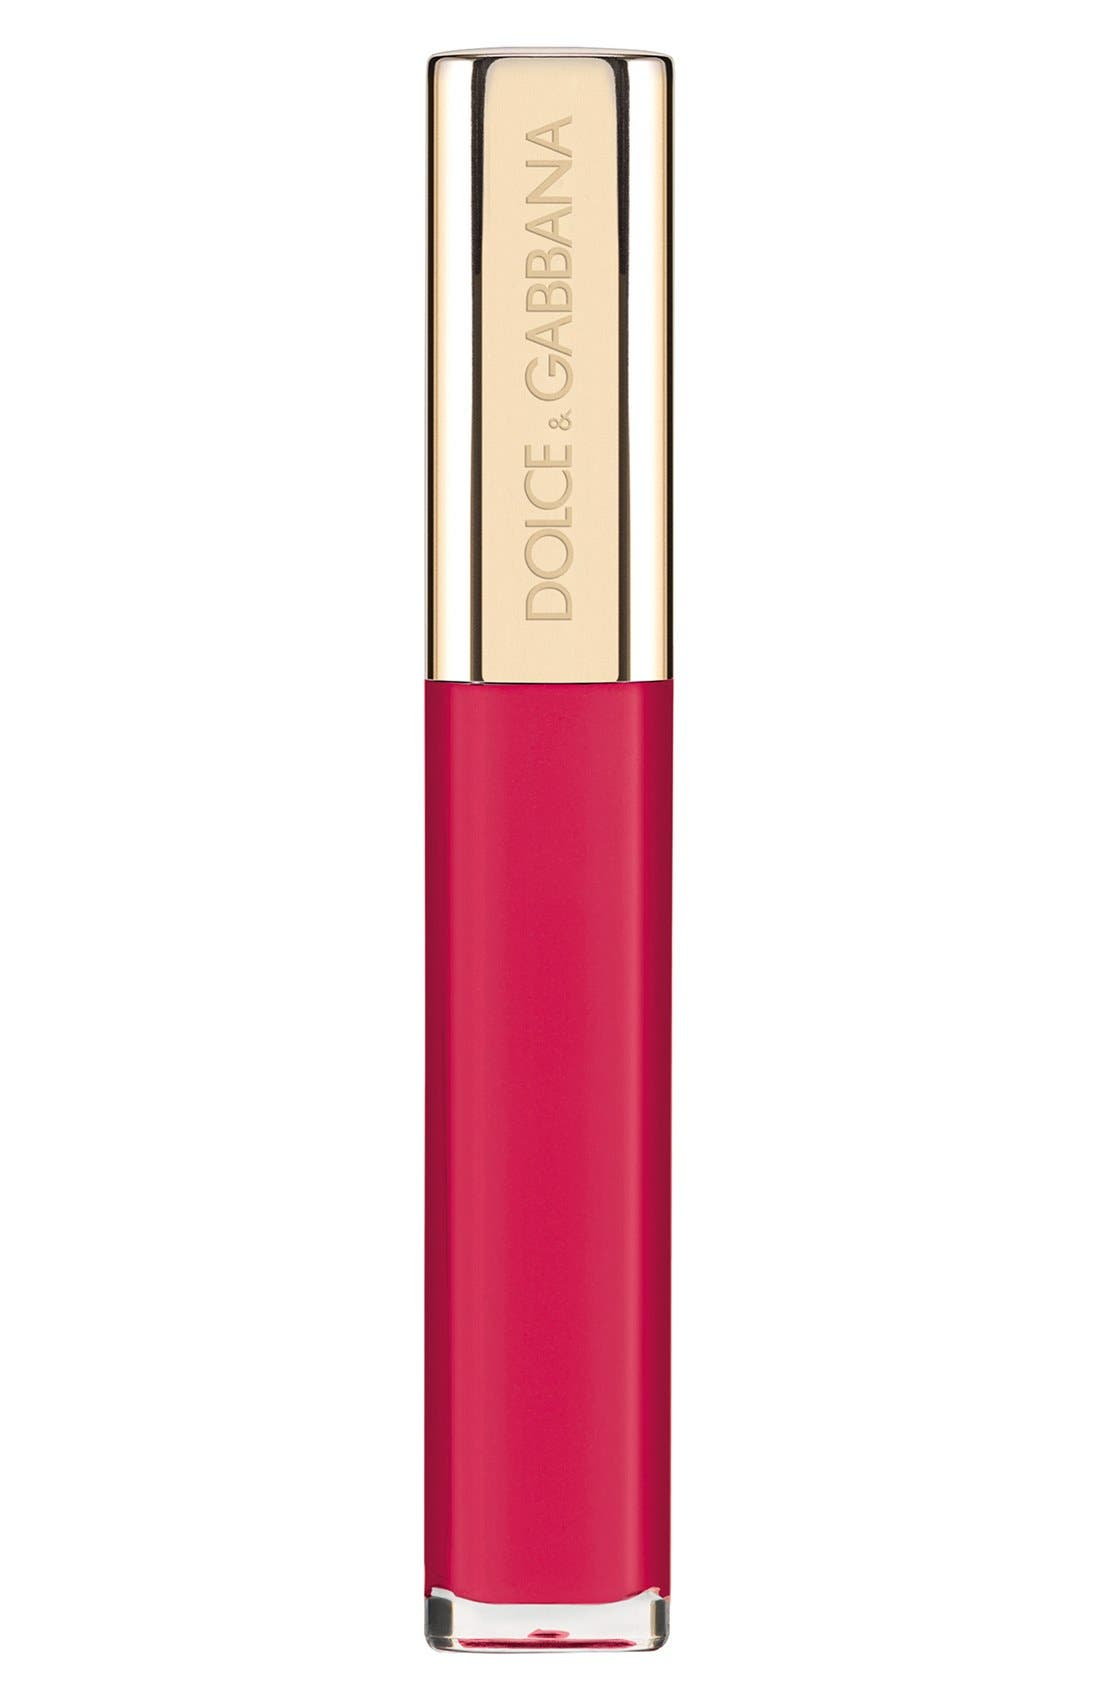 Dolce&Gabbana Beauty Intense Color Gloss